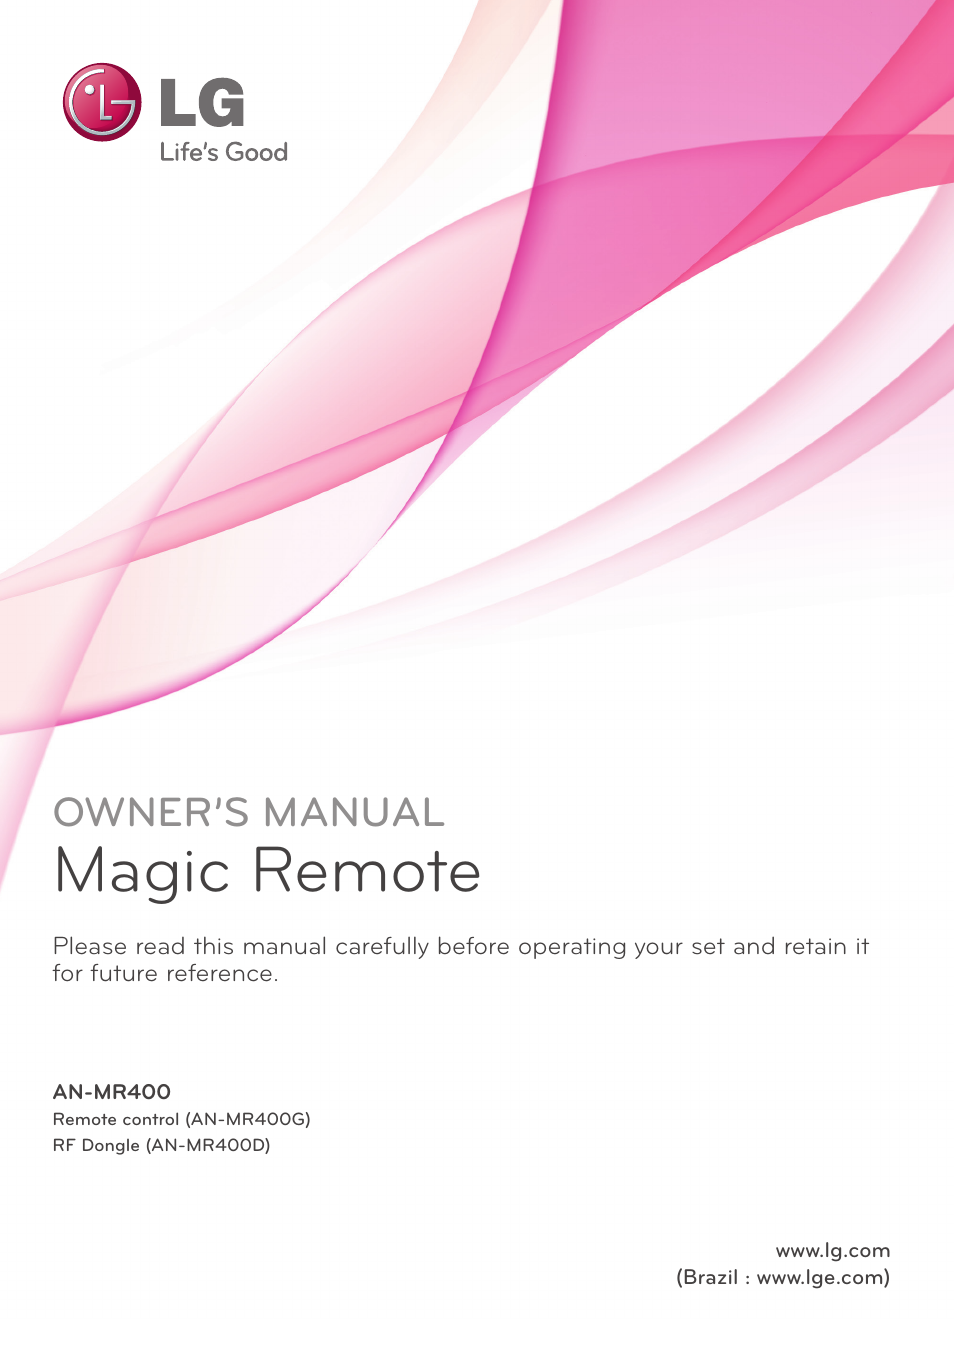 Lg an mr400 user manual 5 pages sciox Image collections